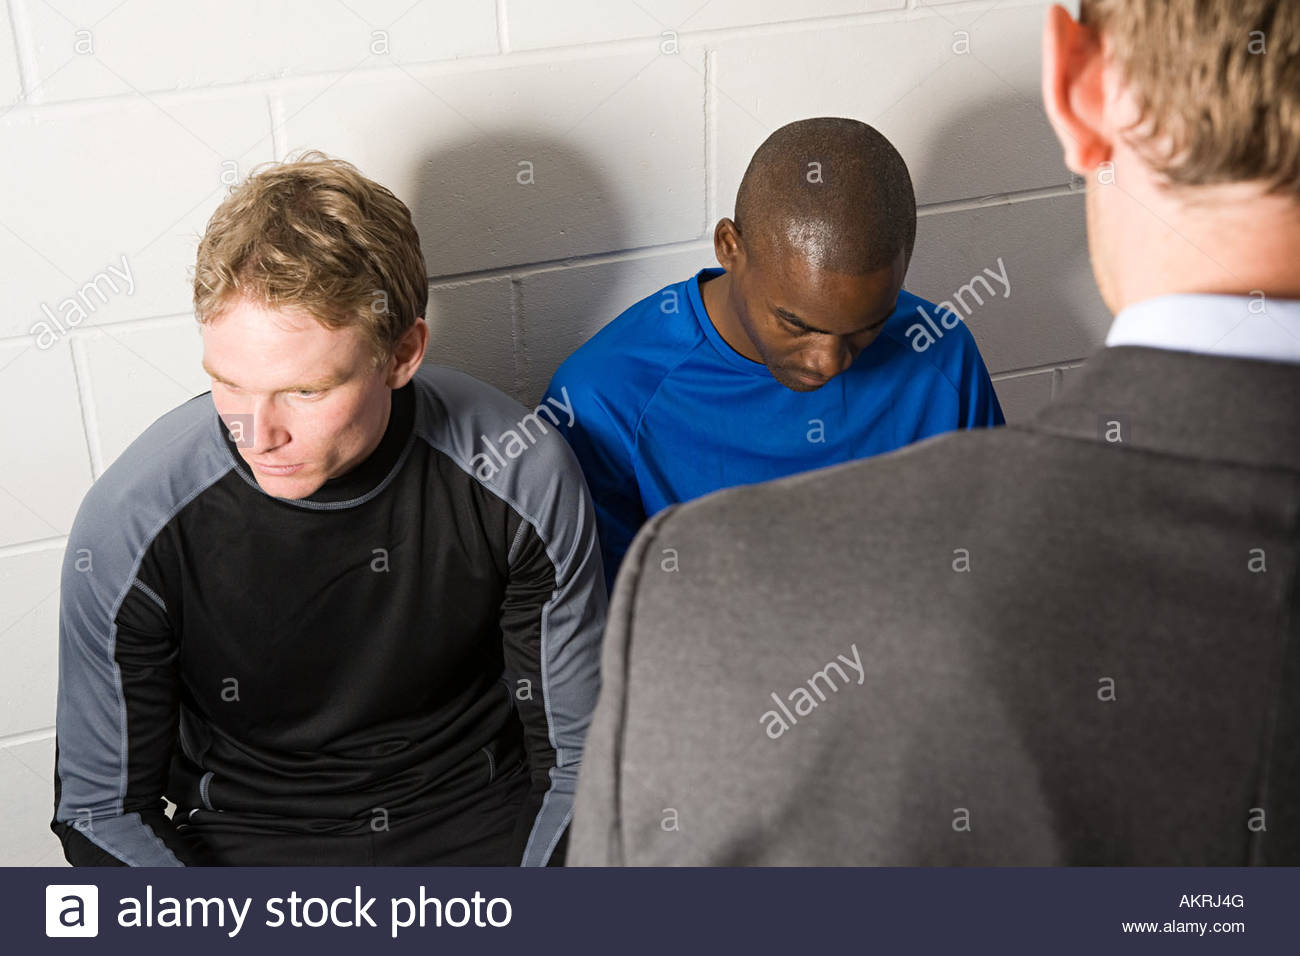 Football manager talking to team - Stock Image